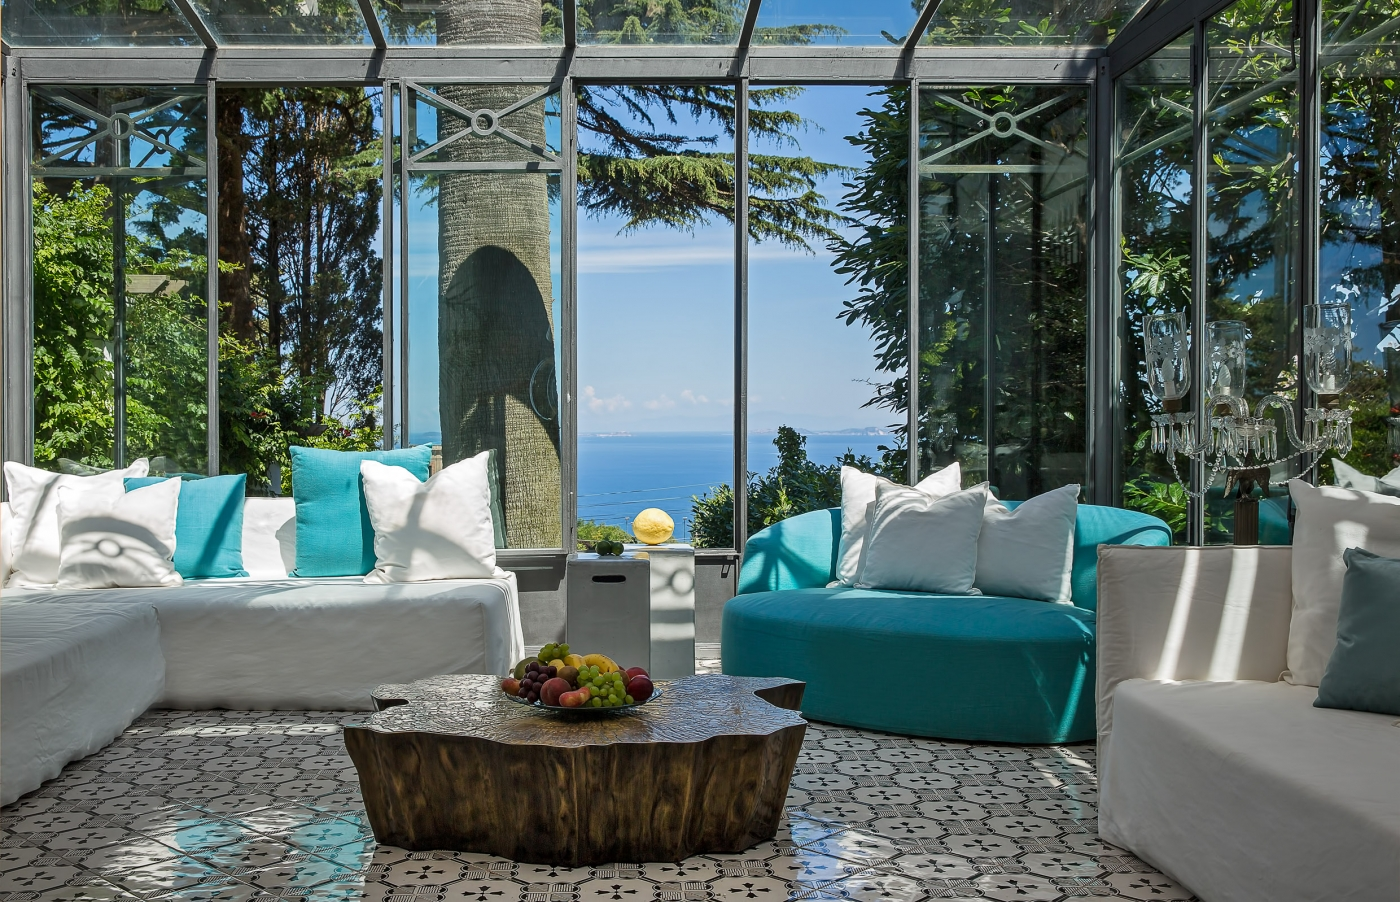 interior design projects Interior Design Projects in Italy That Totally Enhance La Dolce Vita feature 1400x902